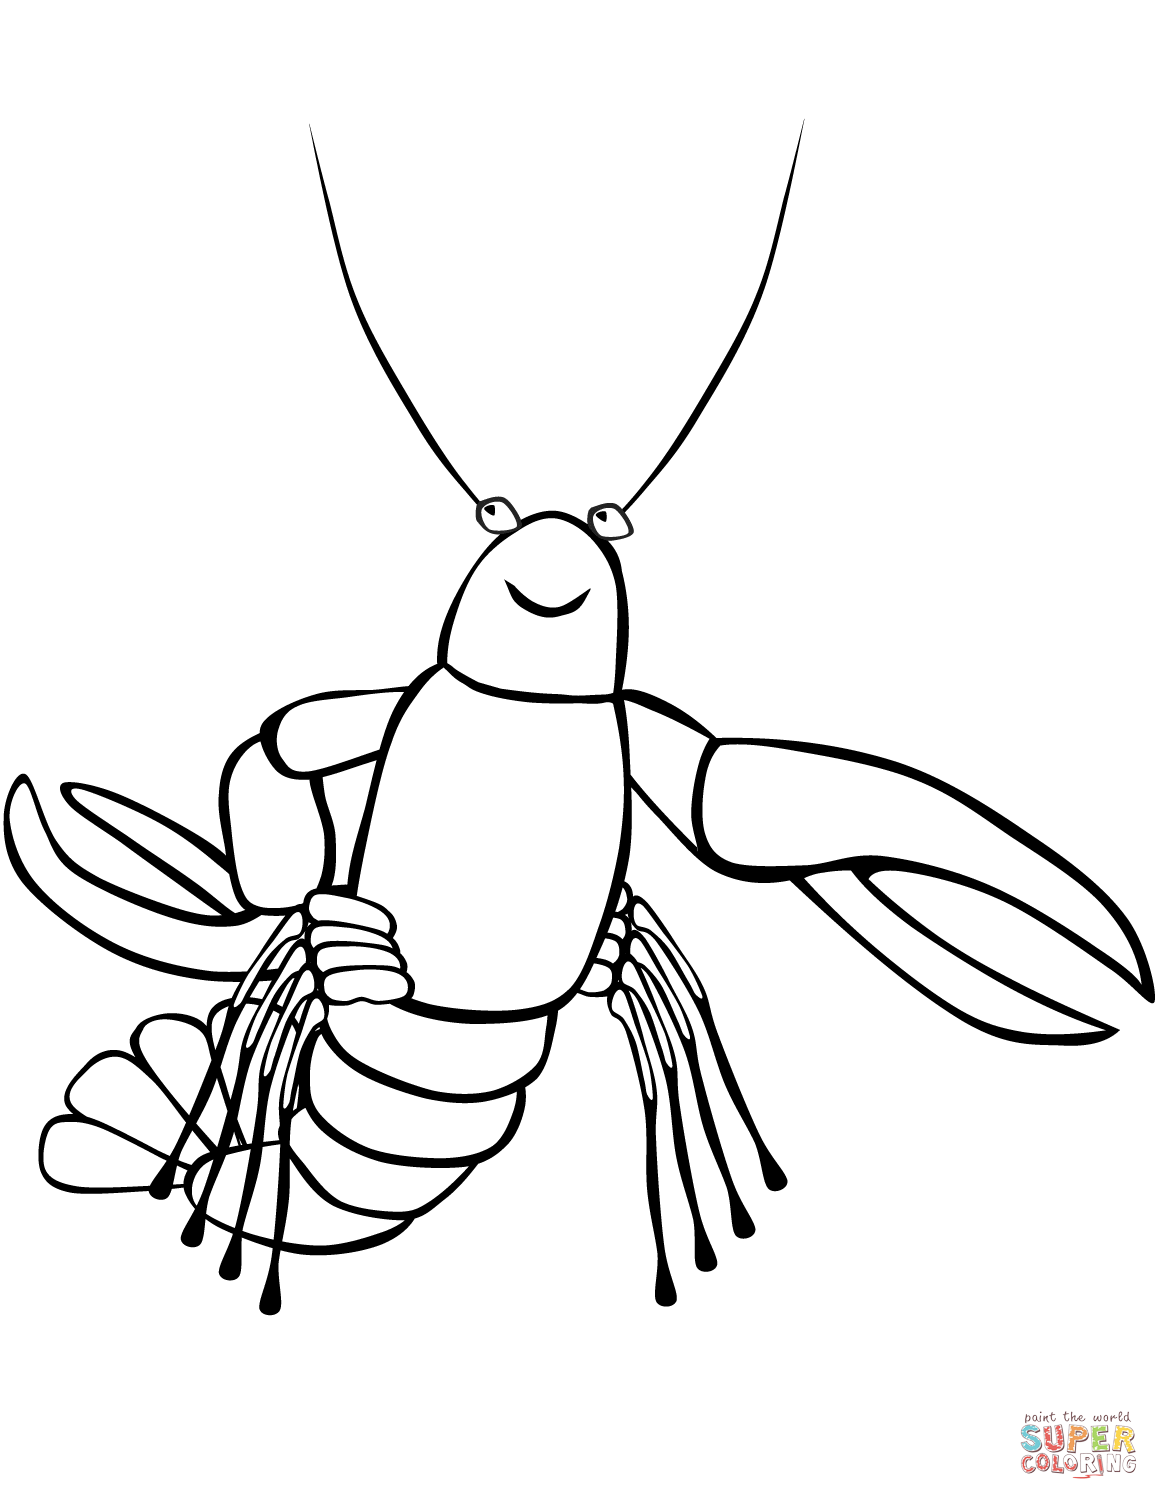 Funny Crayfish Coloring Page